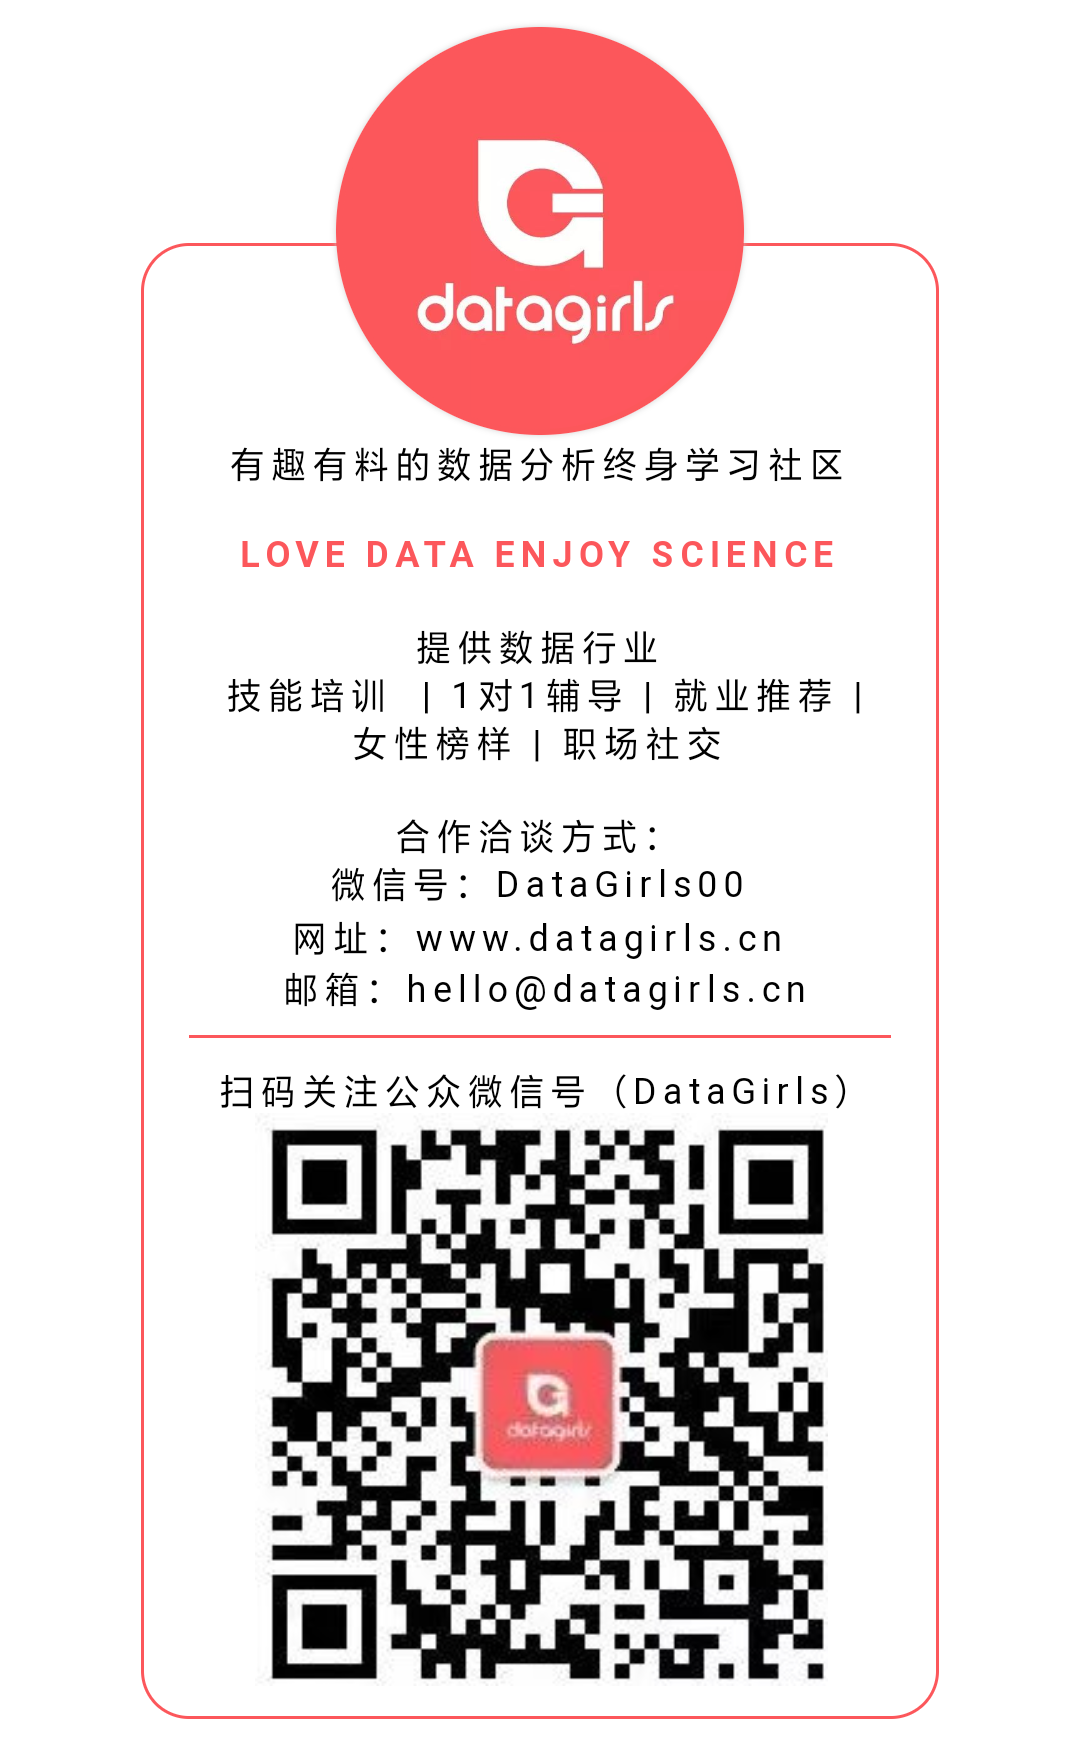 http://www.huodongxing.com/file/20170905/1692804578949/603331563257863.png